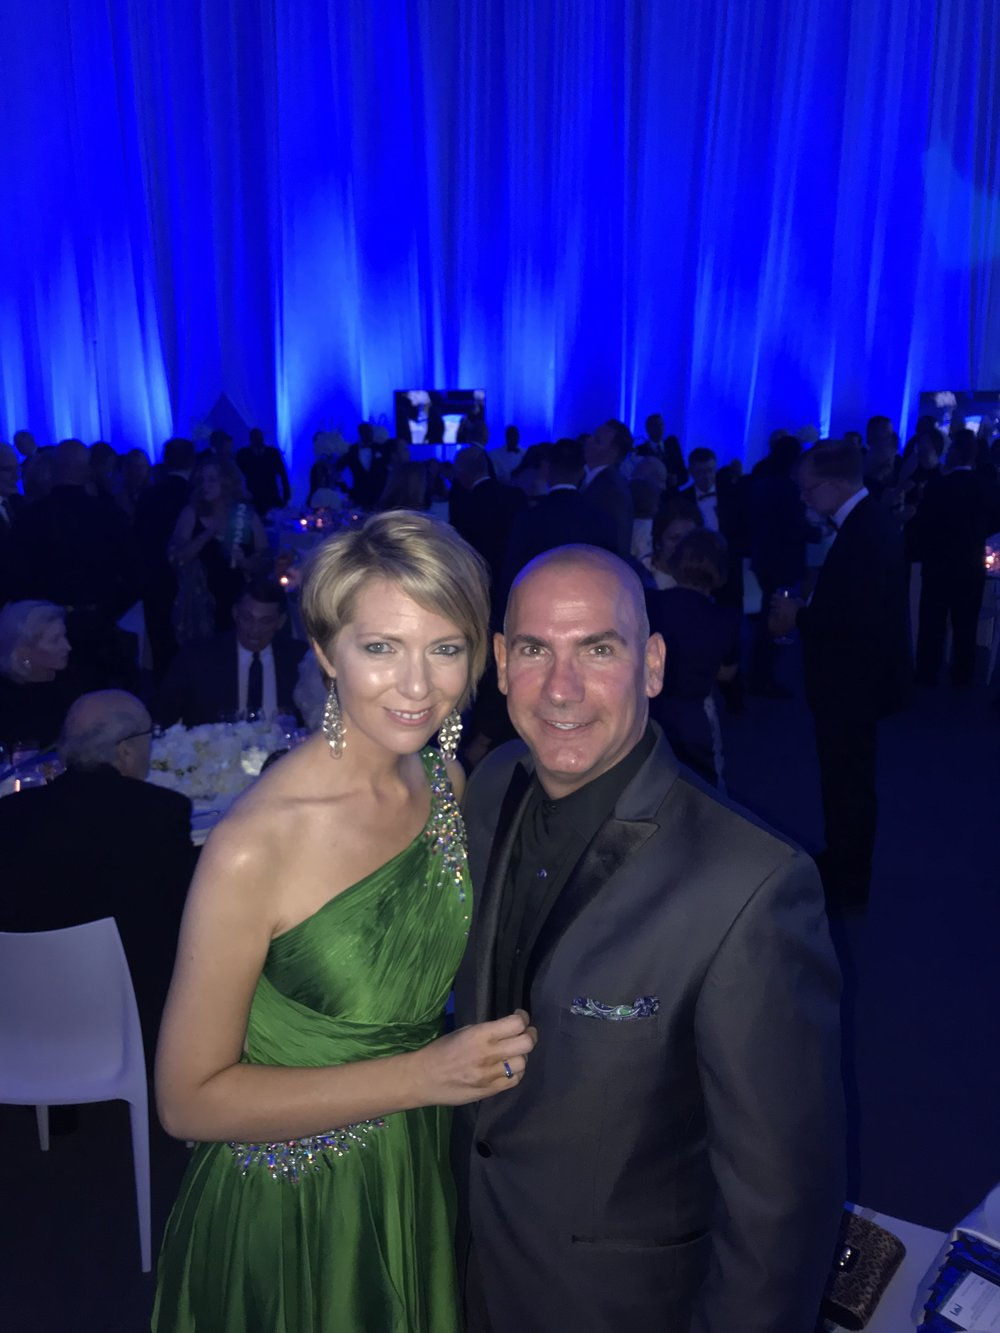 Erica and Ed Castner at the FGCU President's Ball at FCGU in Estero, Florida on April 7, 2018.